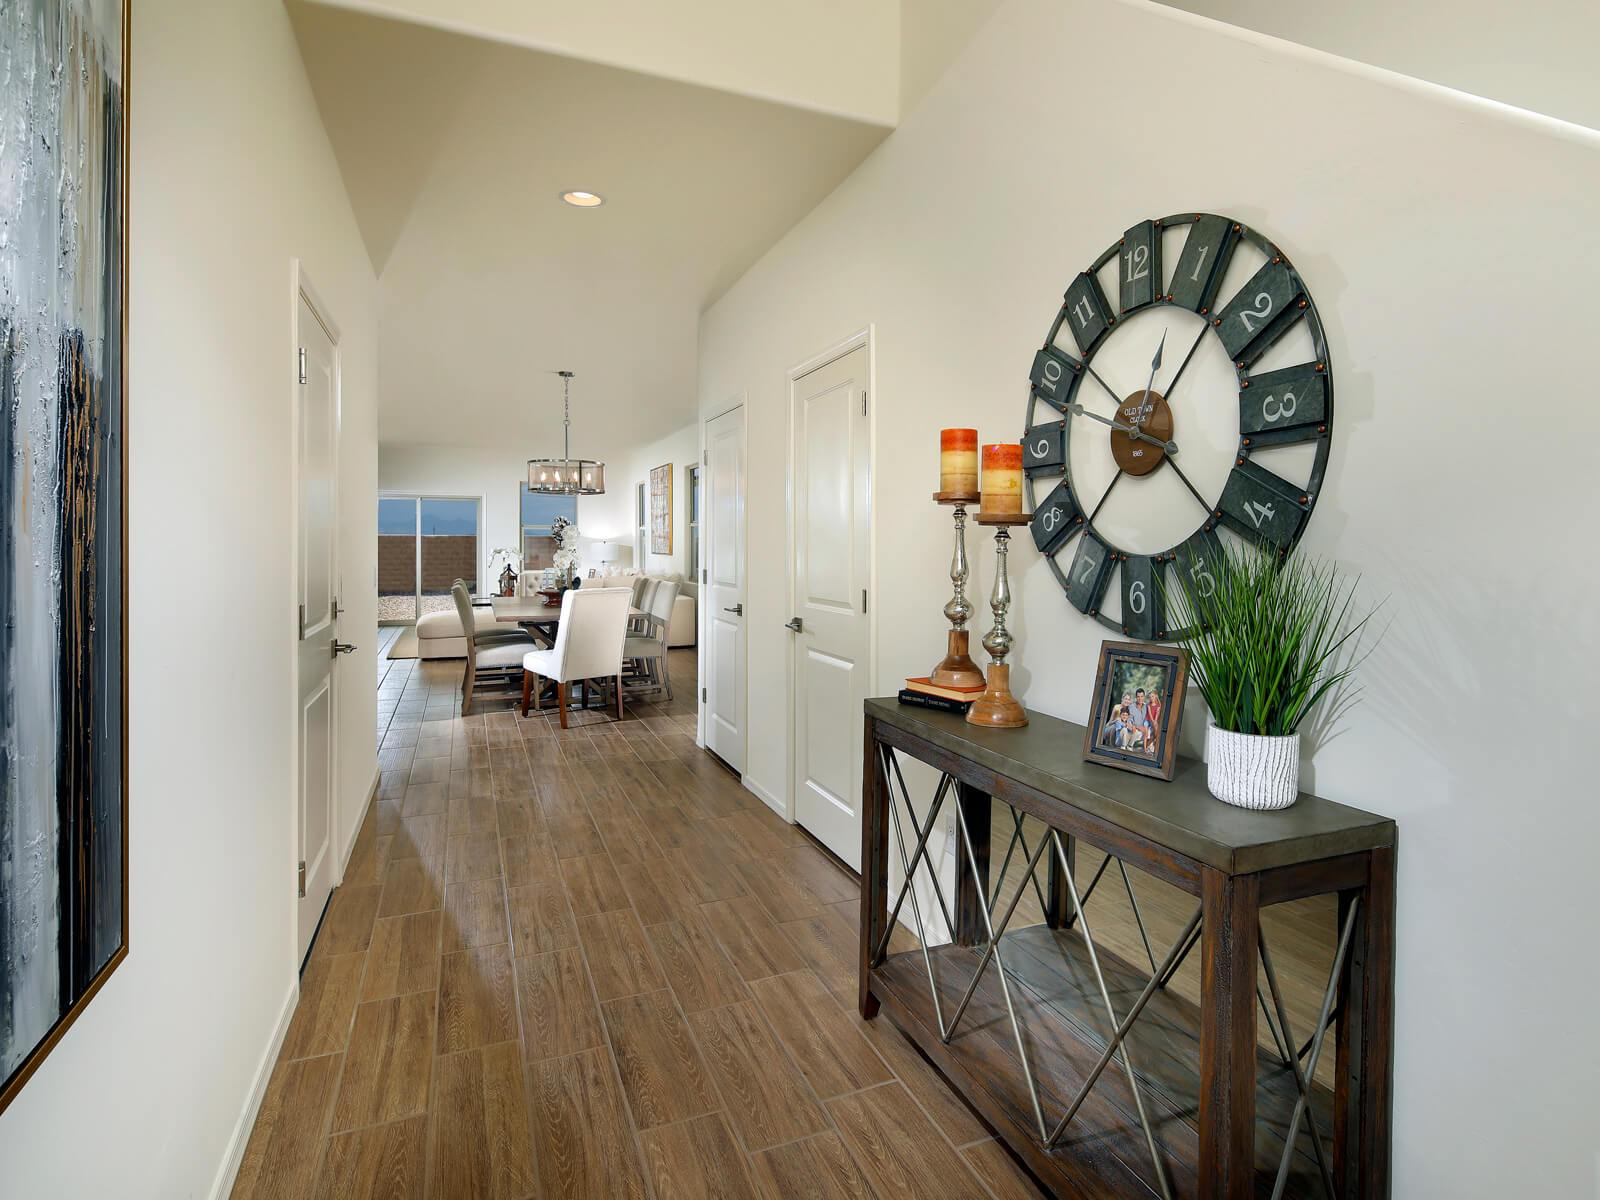 Living Area featured in the Rillito By Meritage Homes in Tucson, AZ